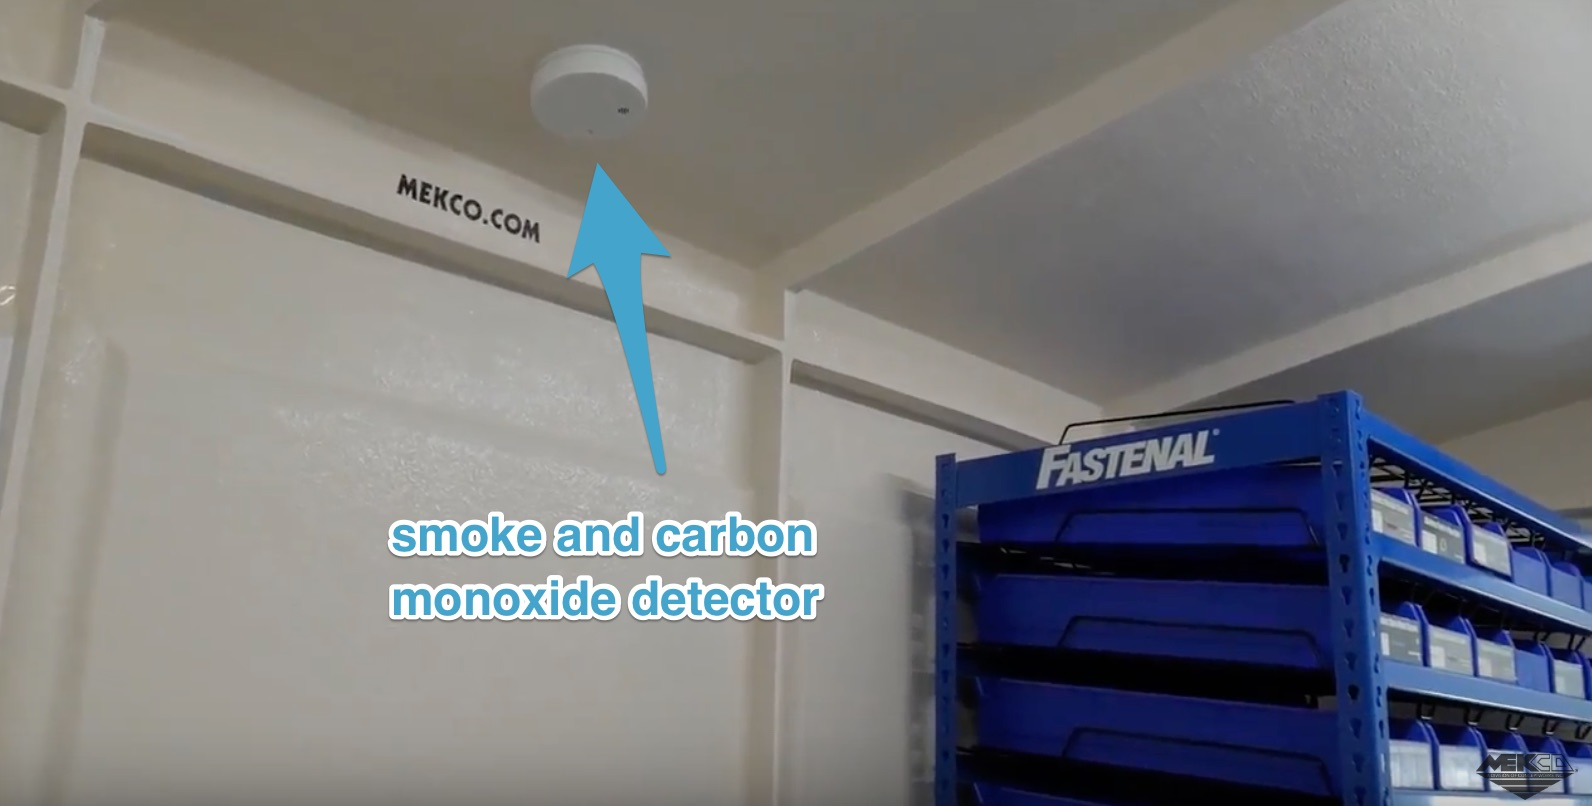 The onsite system smoke and carbon monoxide detector